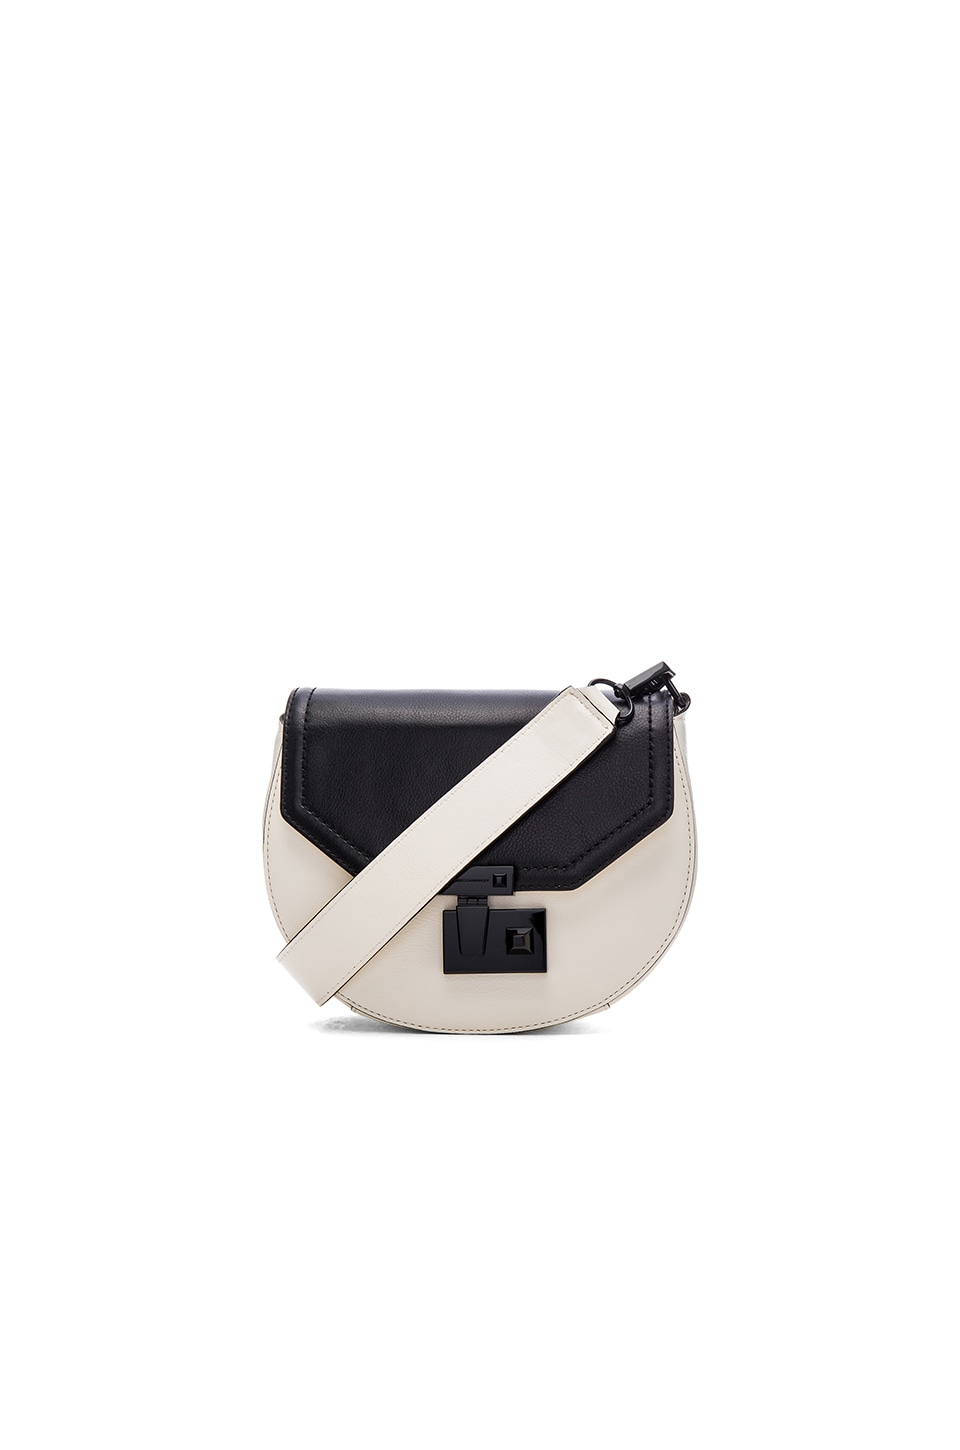 Rebecca Minkoff Medium Paris Saddle Bag in Black & Antique White